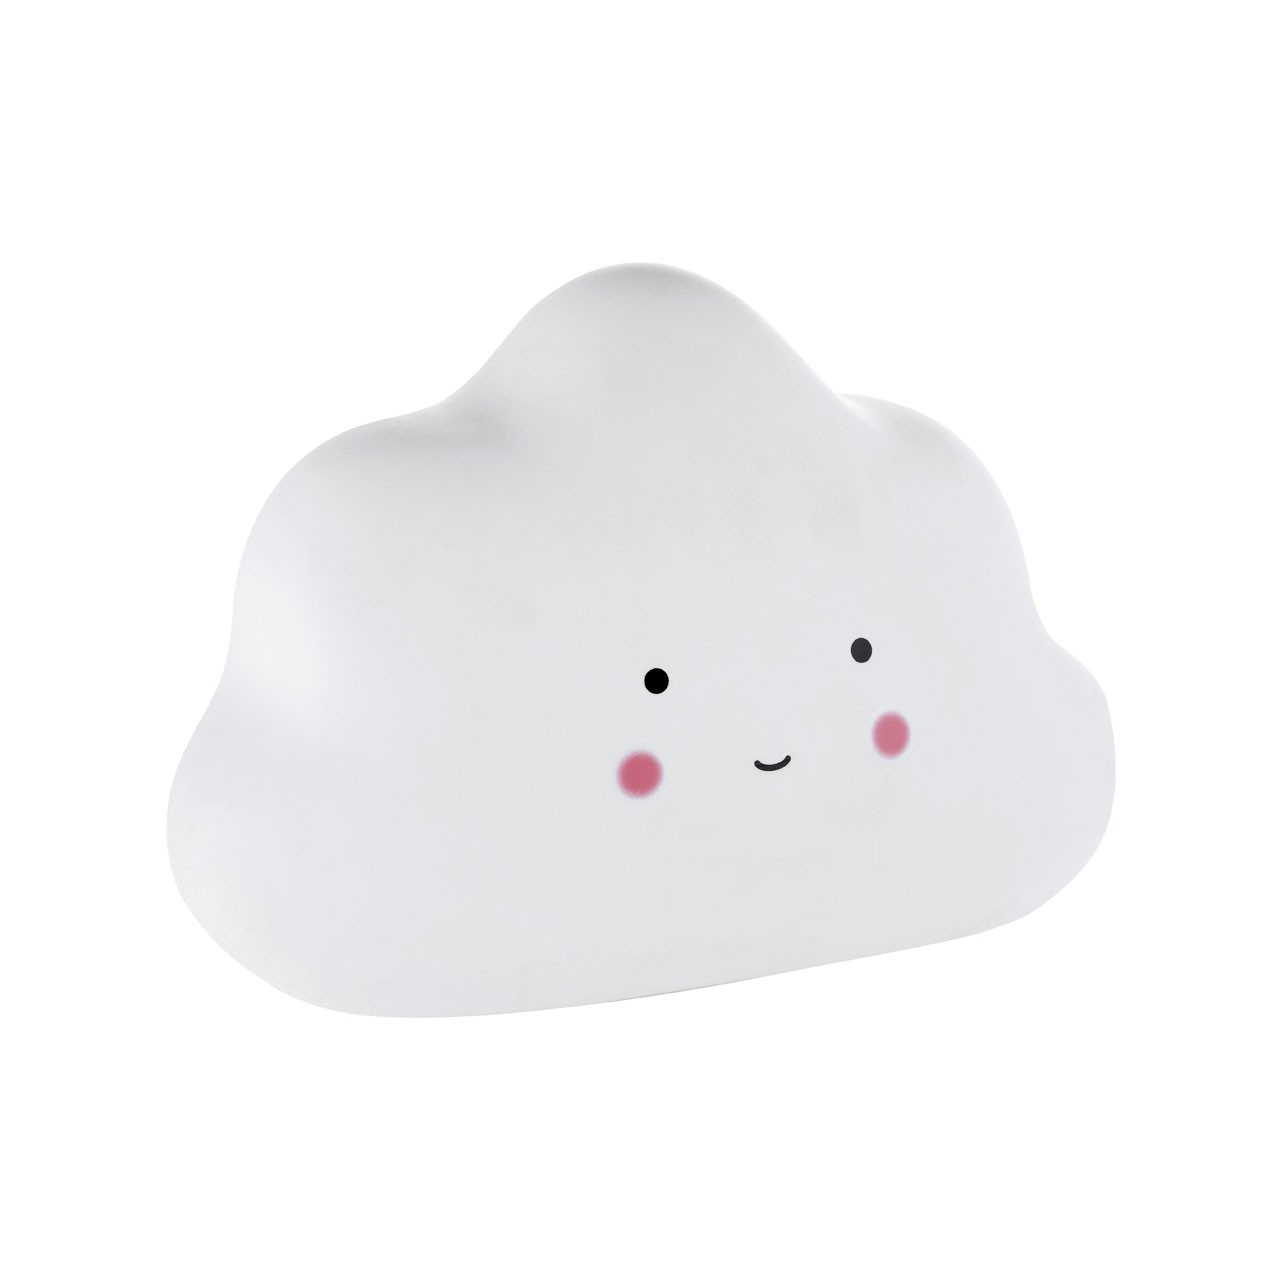 The children's cloud night light will make a charming addition